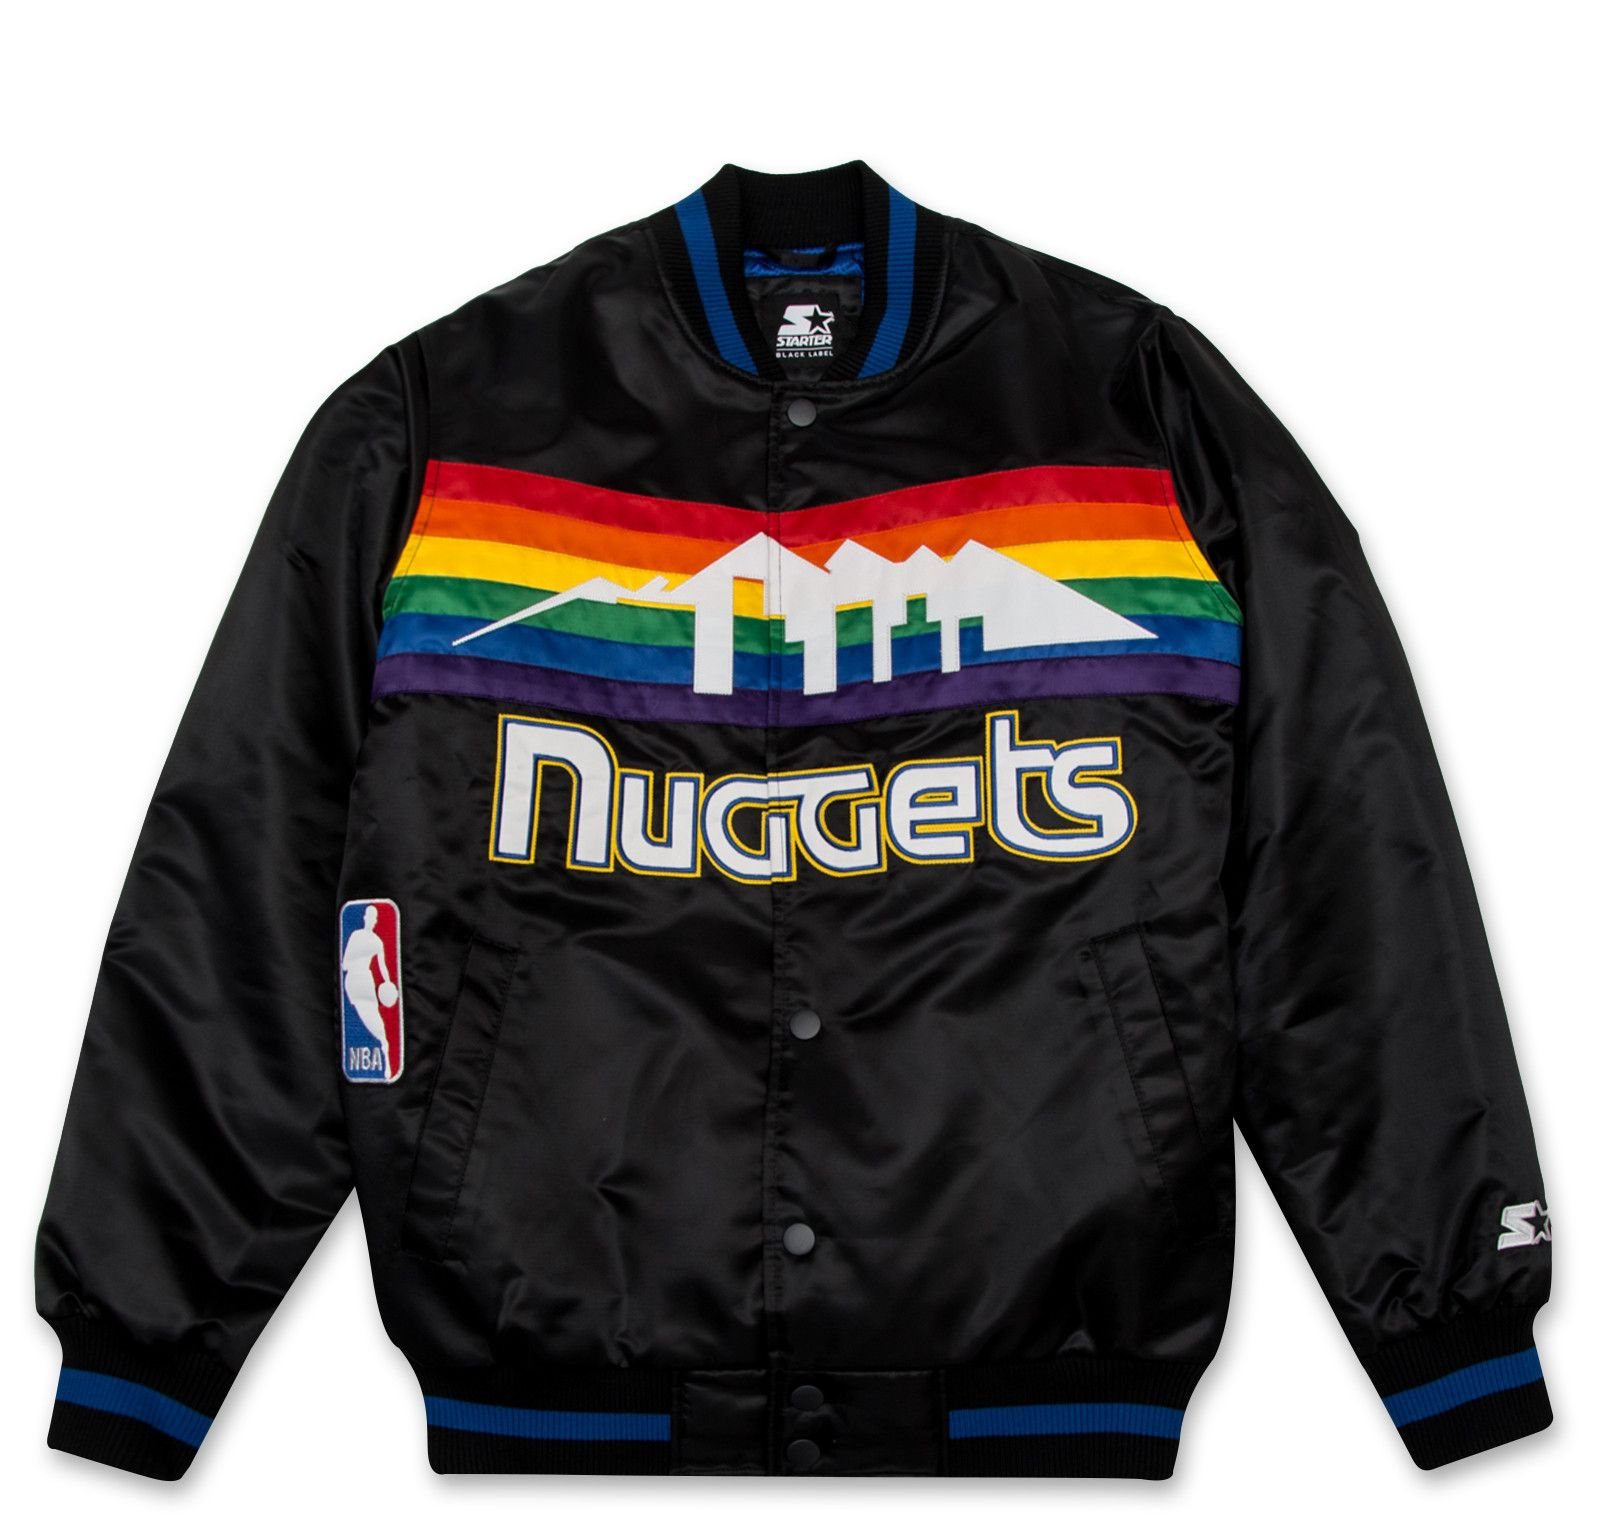 Starter Black Label Satin Jacket Denver Nuggets Black Satin Jackets Jackets Black Label